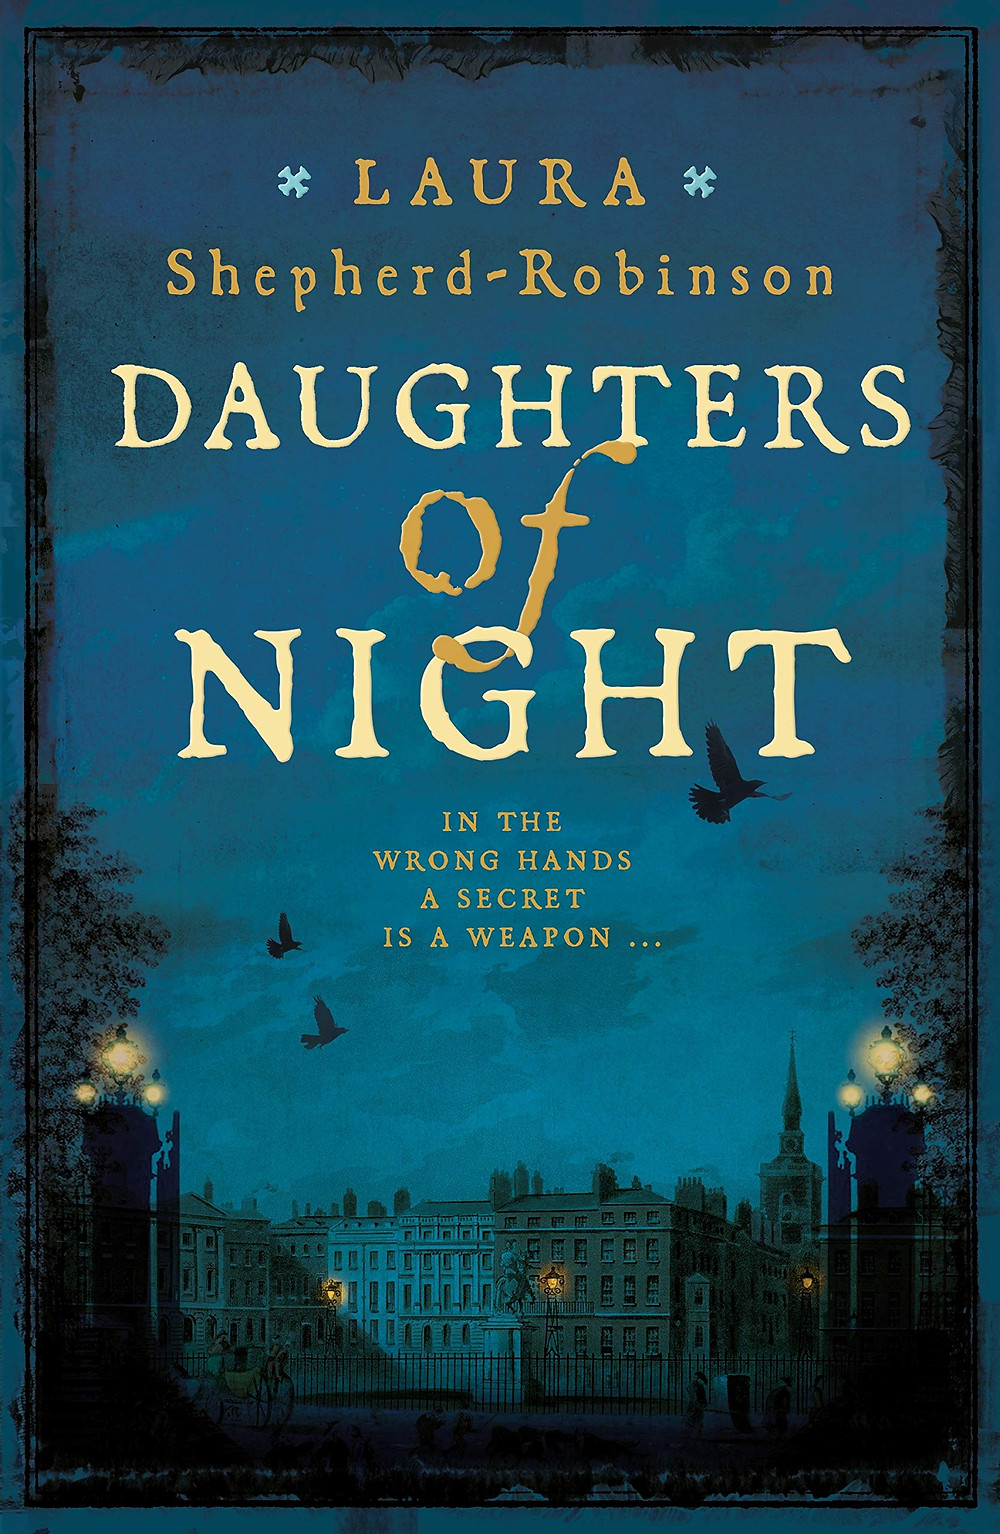 Daughters of Night By Laura Shepherd-Robinson book review 592 pages. January 2021. The Book Slut www.thebookslut.com